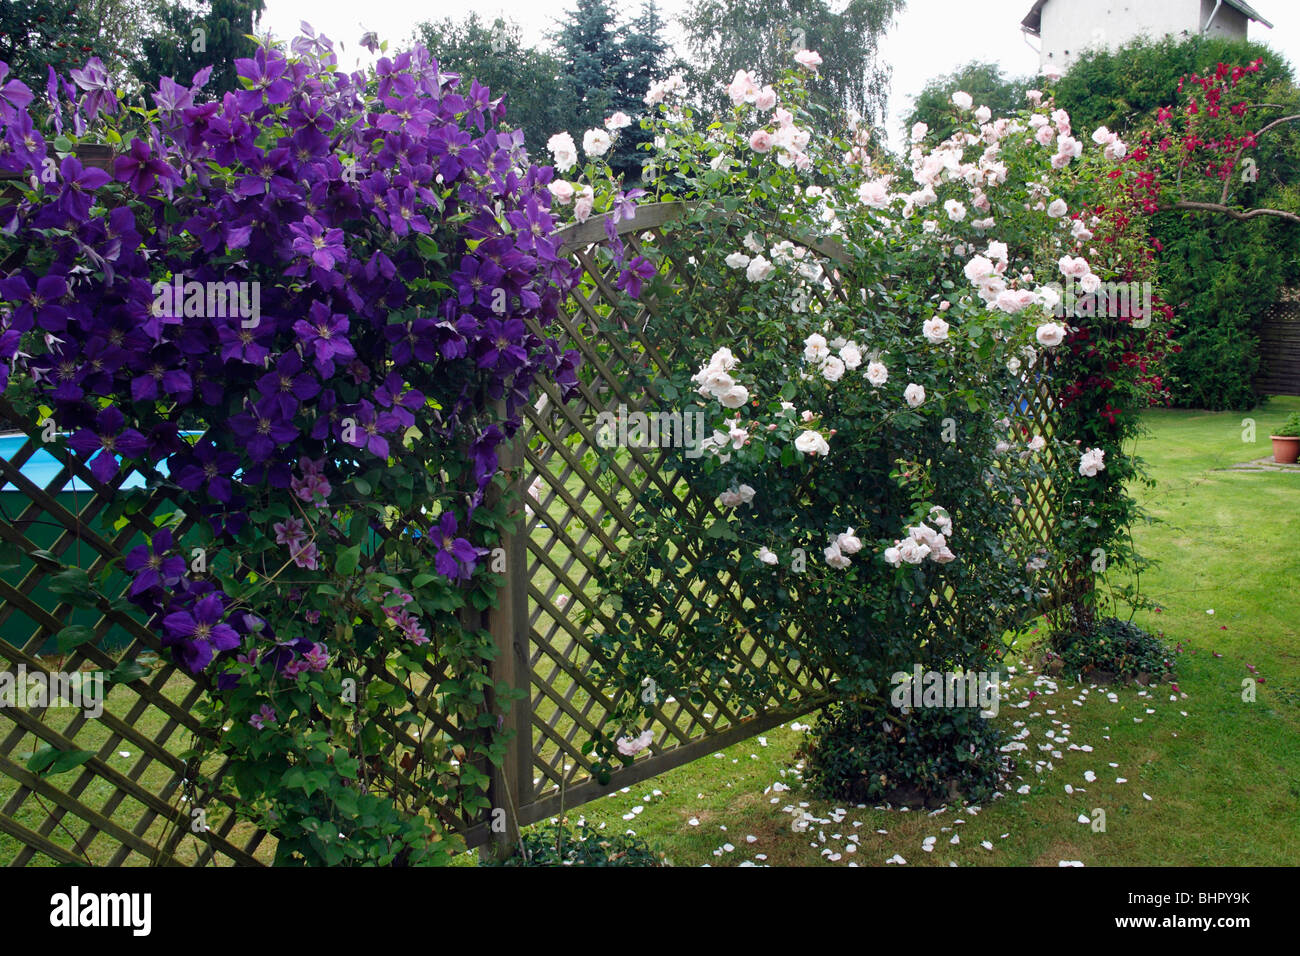 Flowering Clematis (x Jackmanni), And Climbing Rose Growing On Trellis In  Garden, Germany